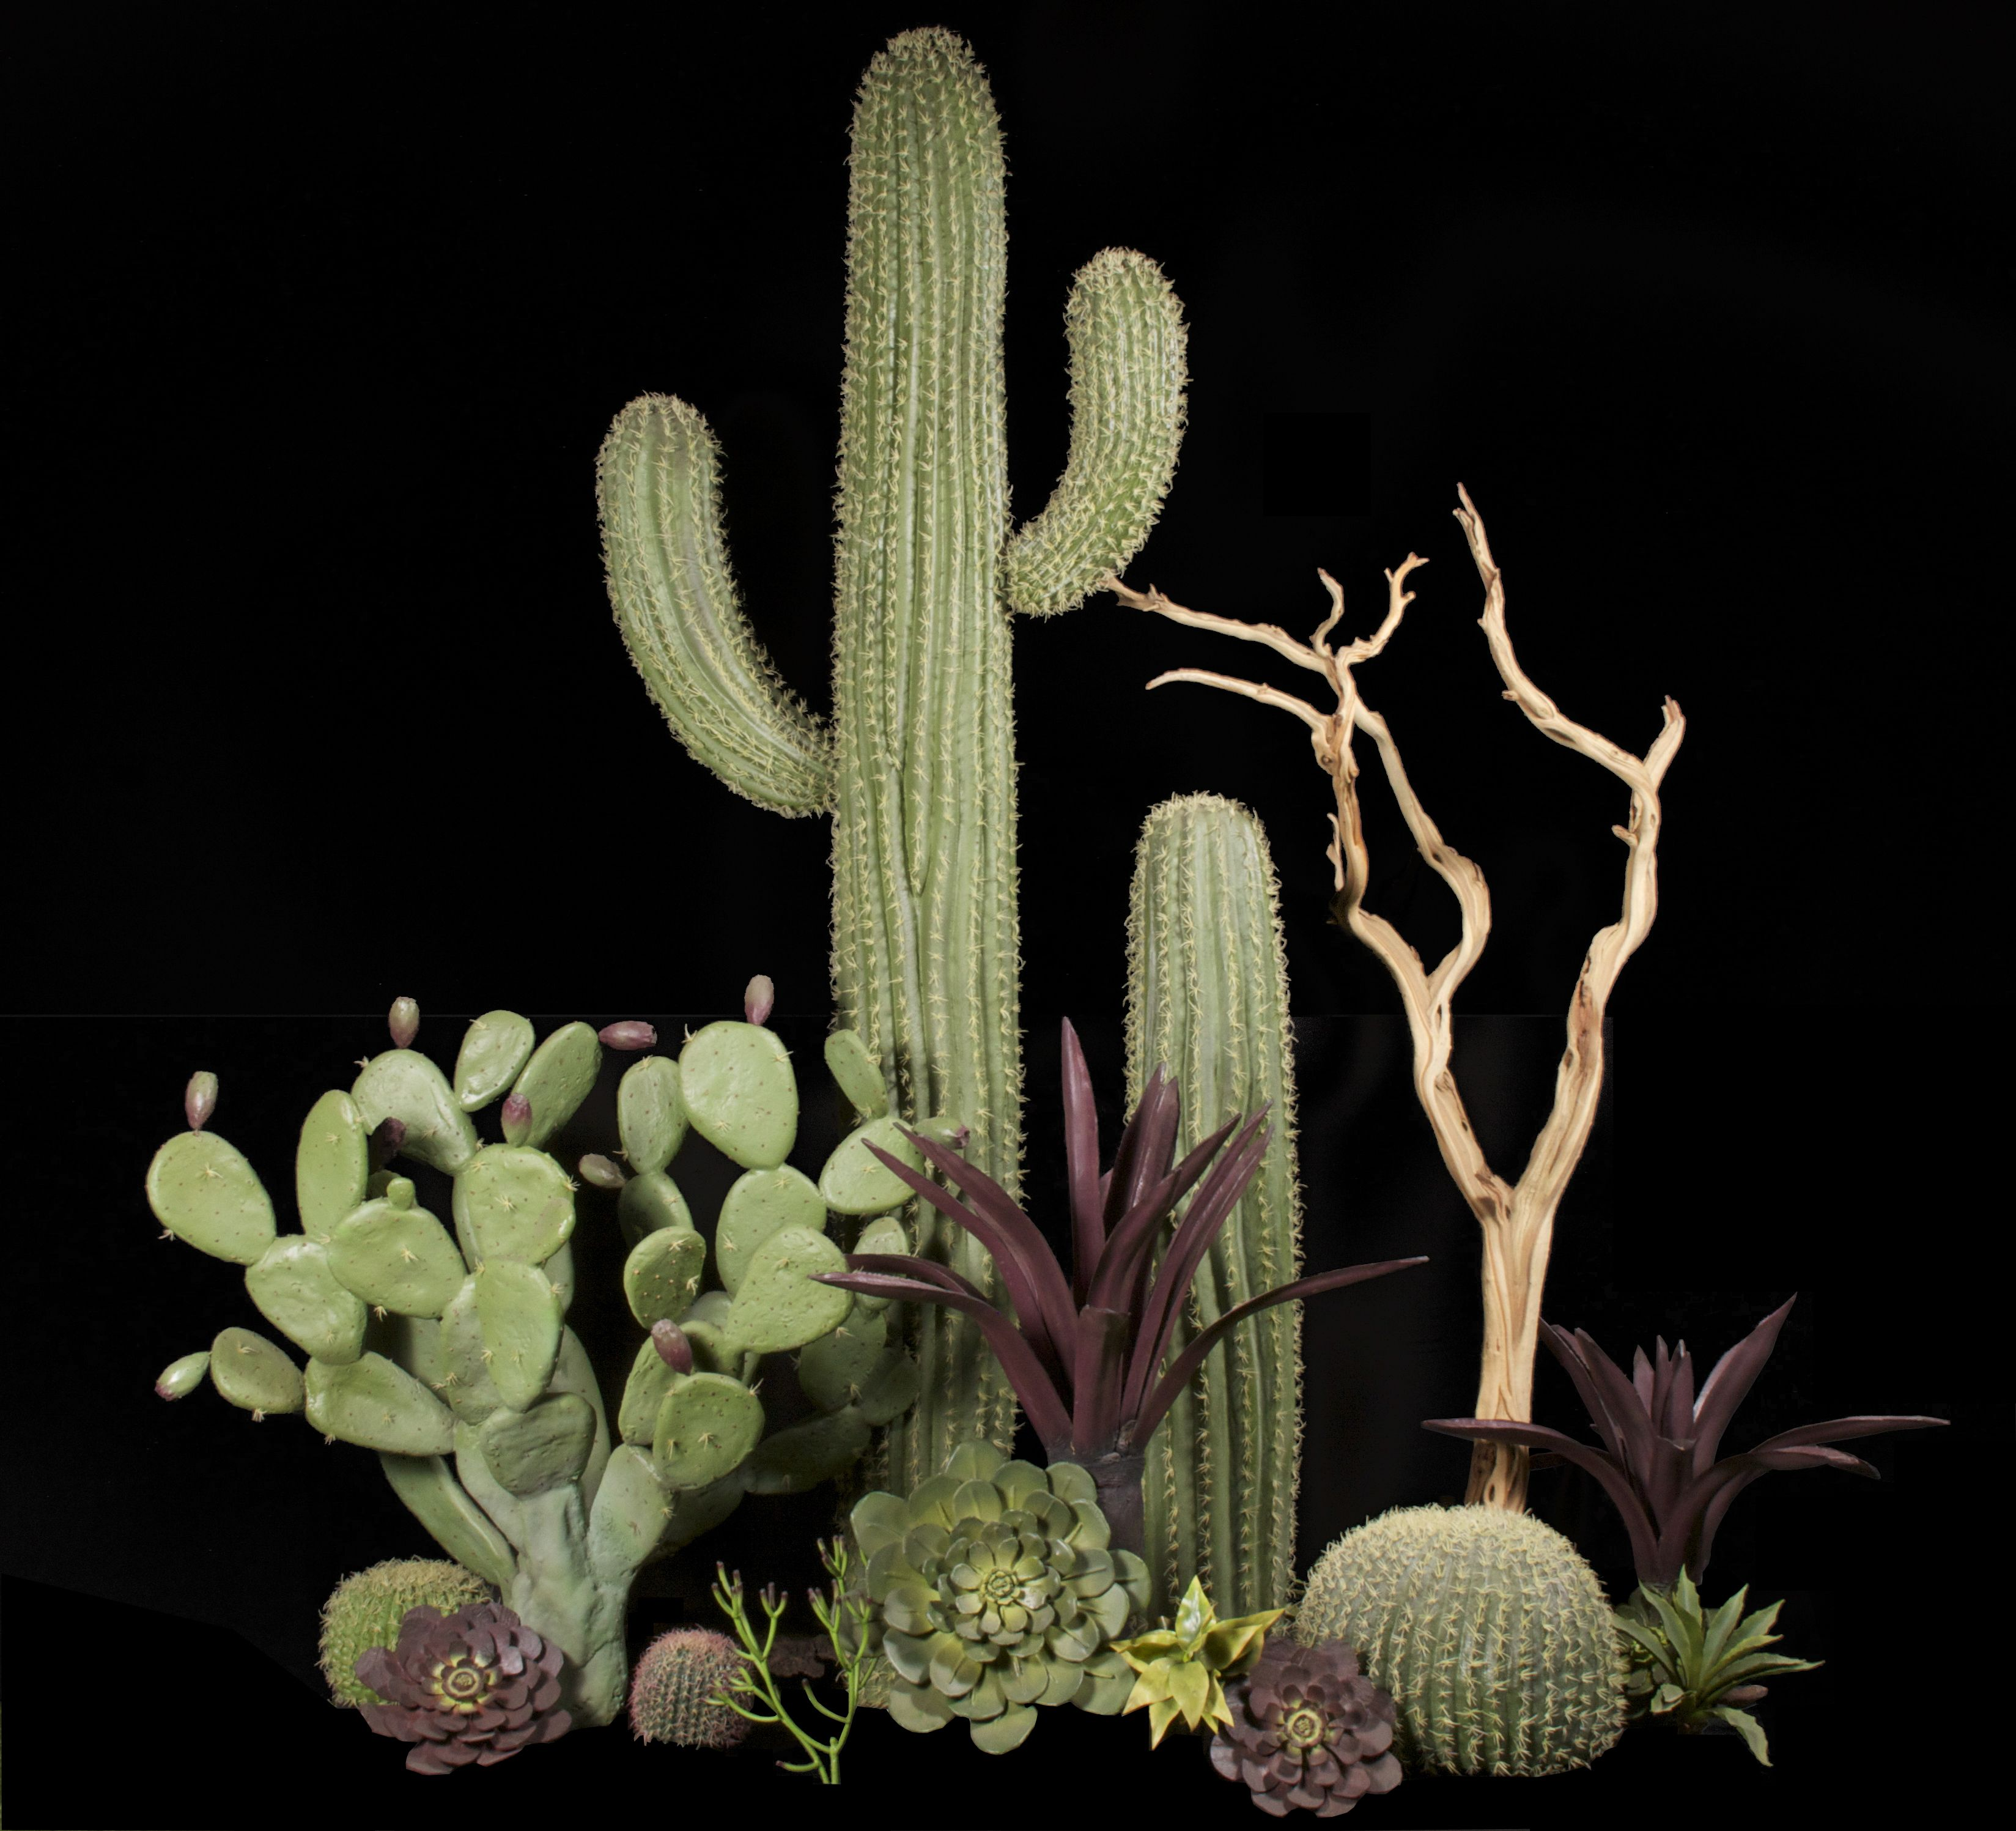 Fabricated desert scene with saguaro cactus and succulents